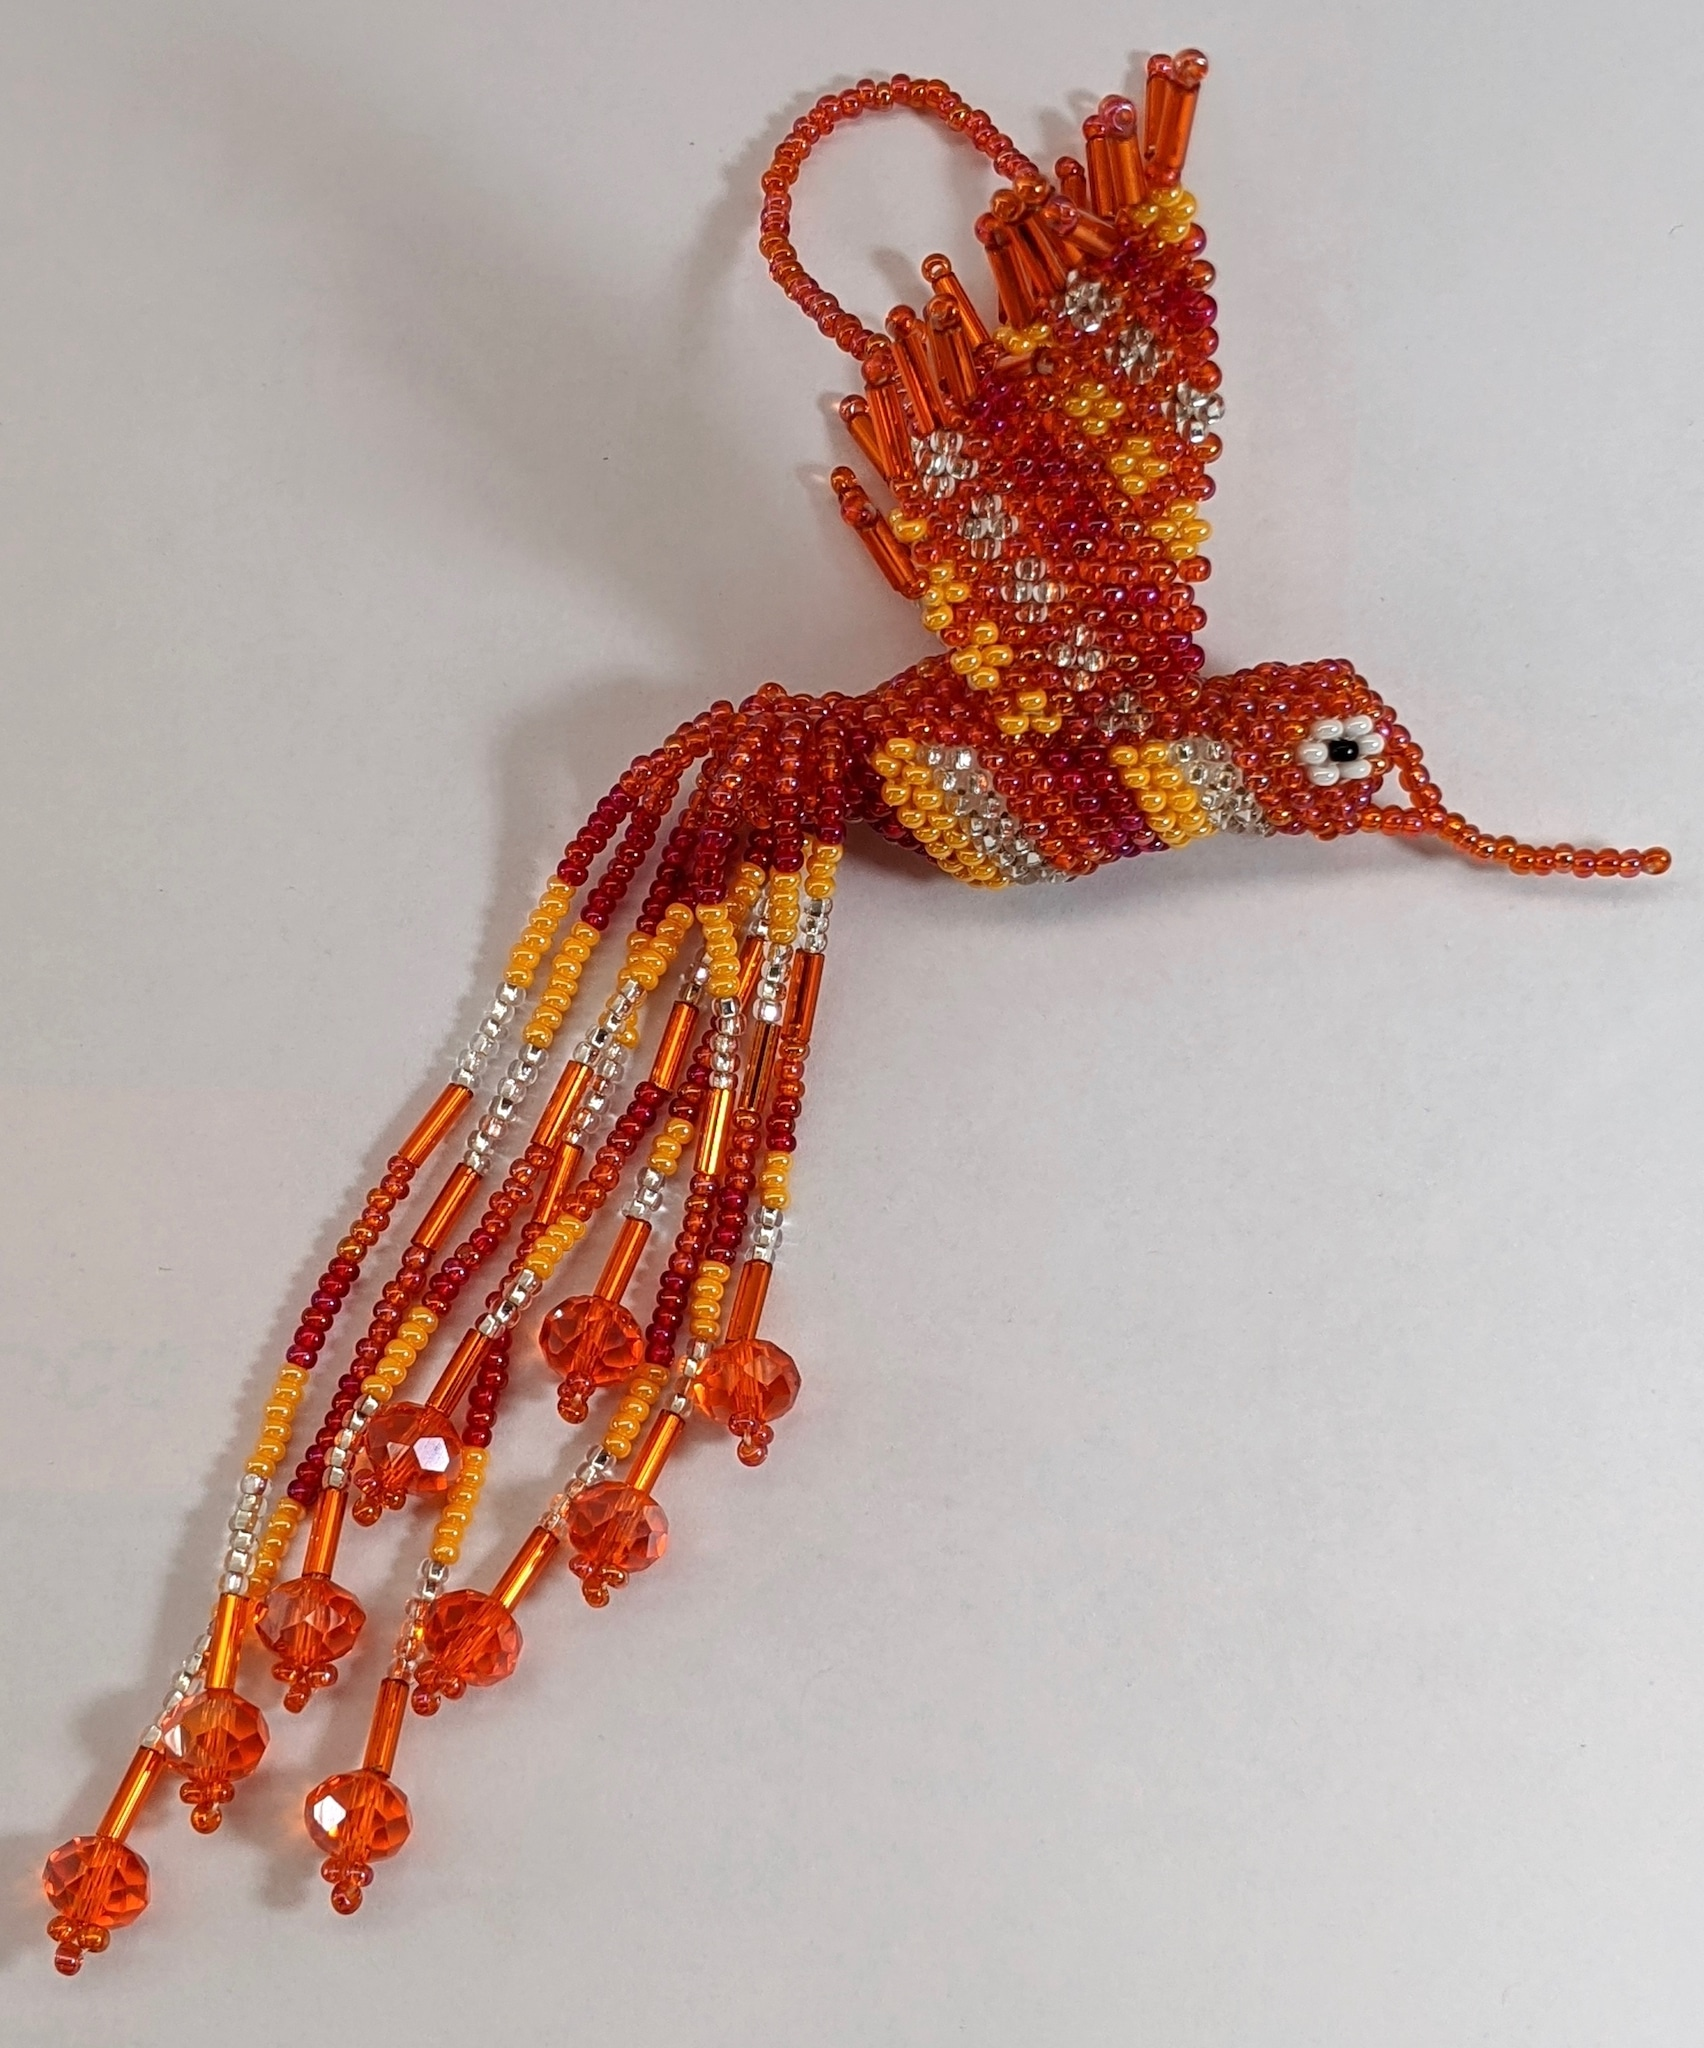 Beaded Hummingbird Beaded Ornament - Oranges and Silver White